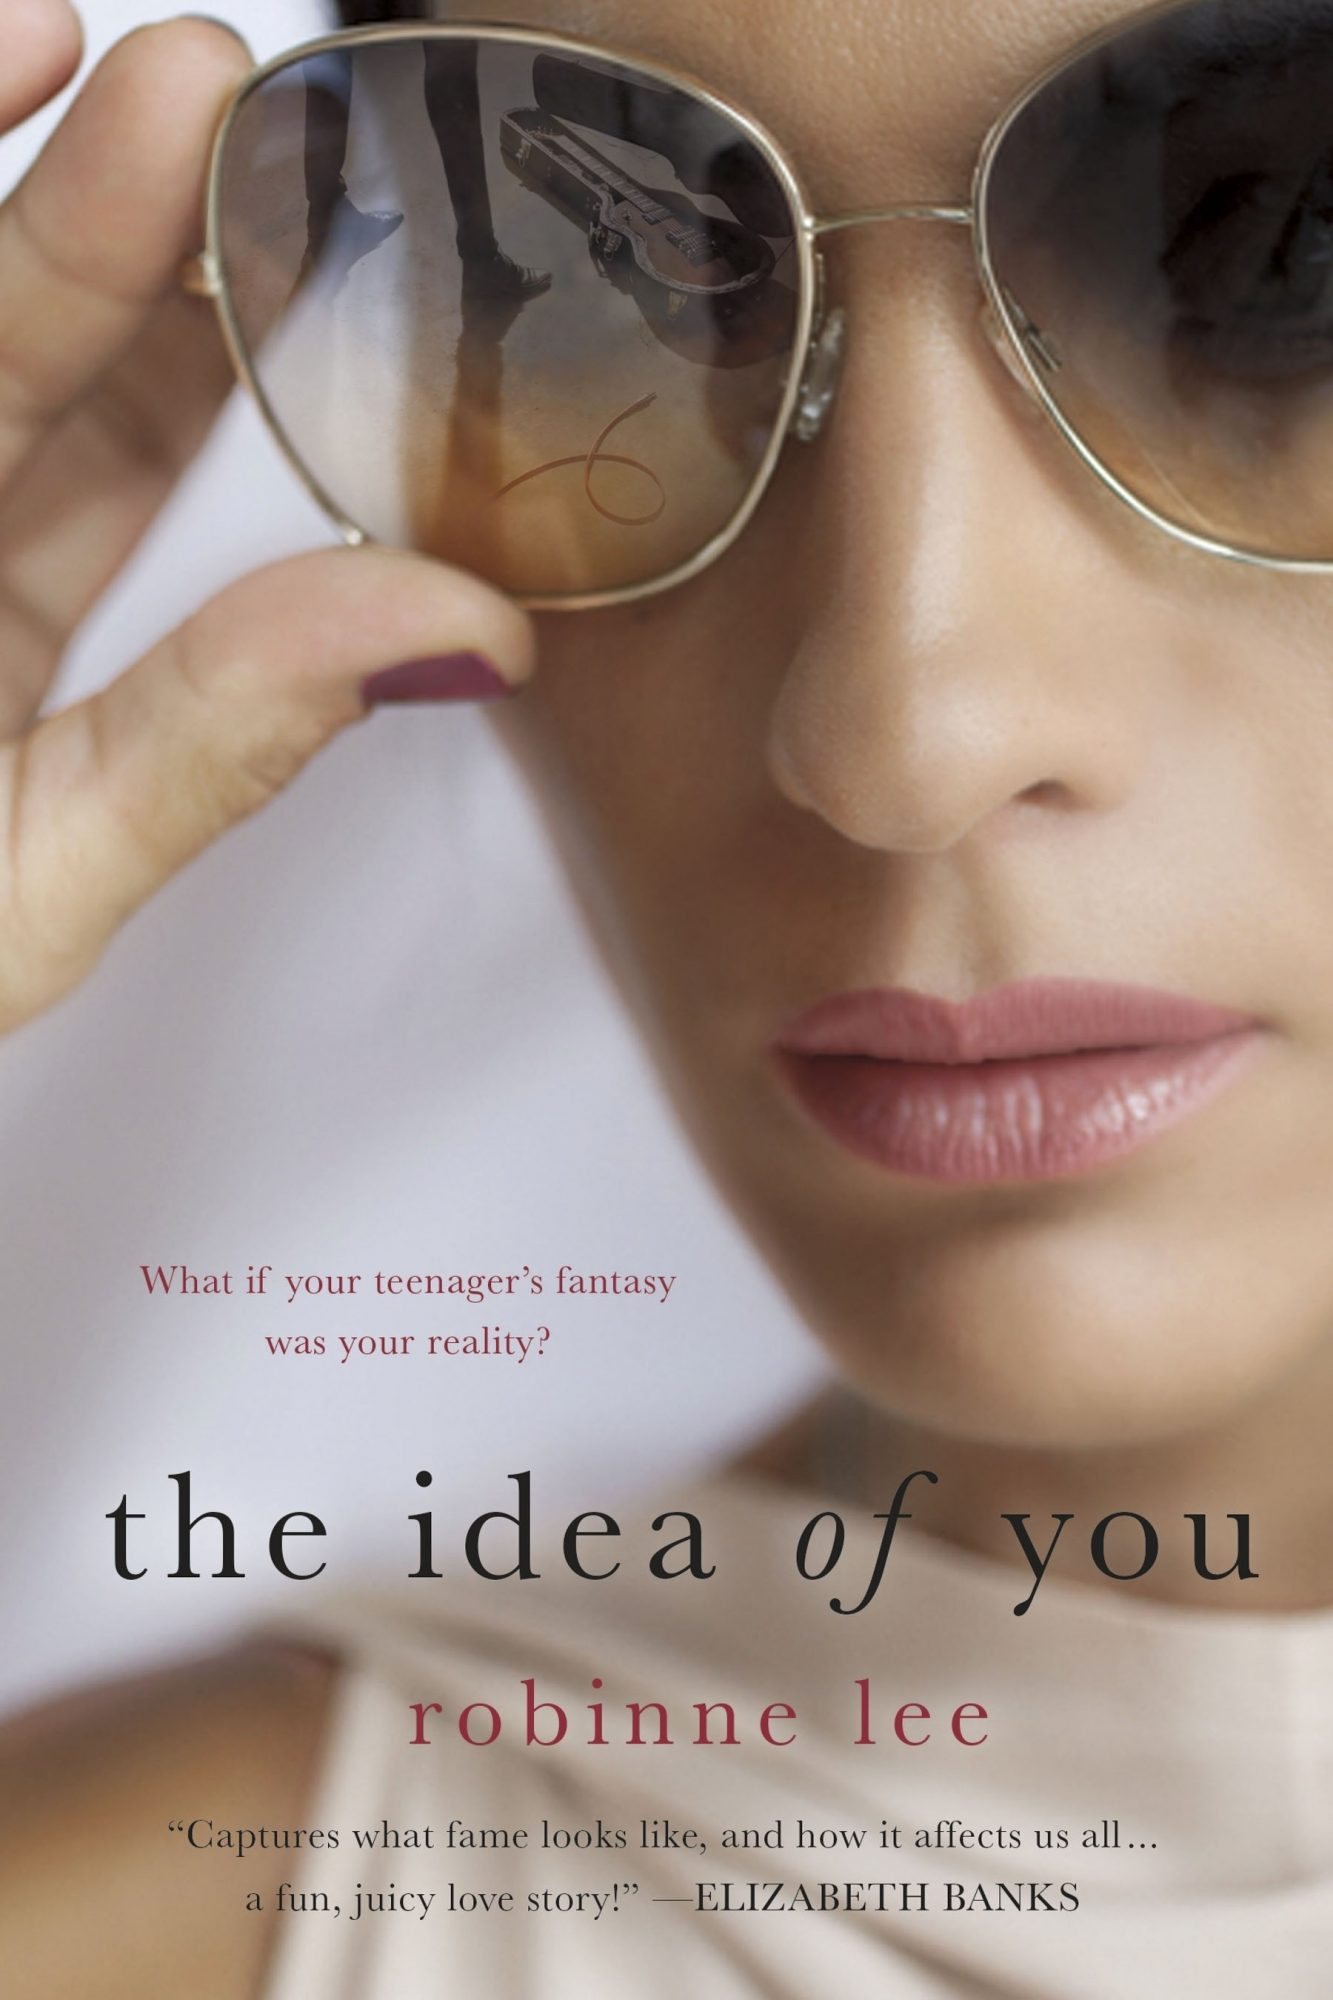 the-idea-of-you-by-robinne-lee-33f5ebab-ad3c-477e-bba4-619415c52d57